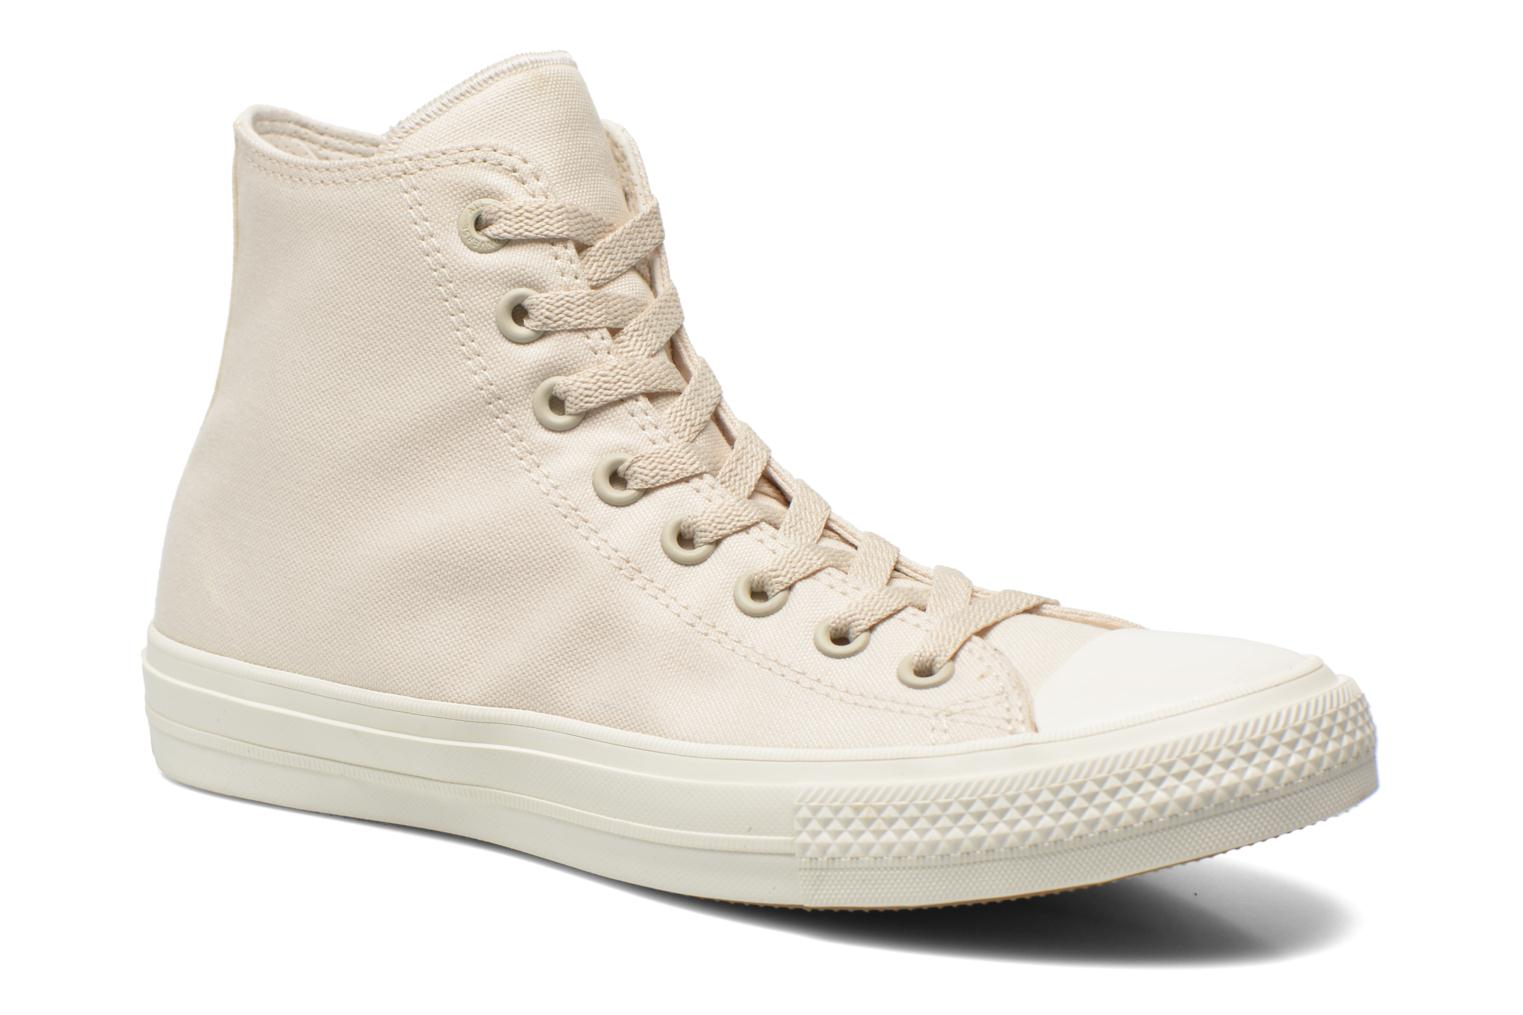 Chuck Taylor All Star II Hi M Parchment/Navy/White